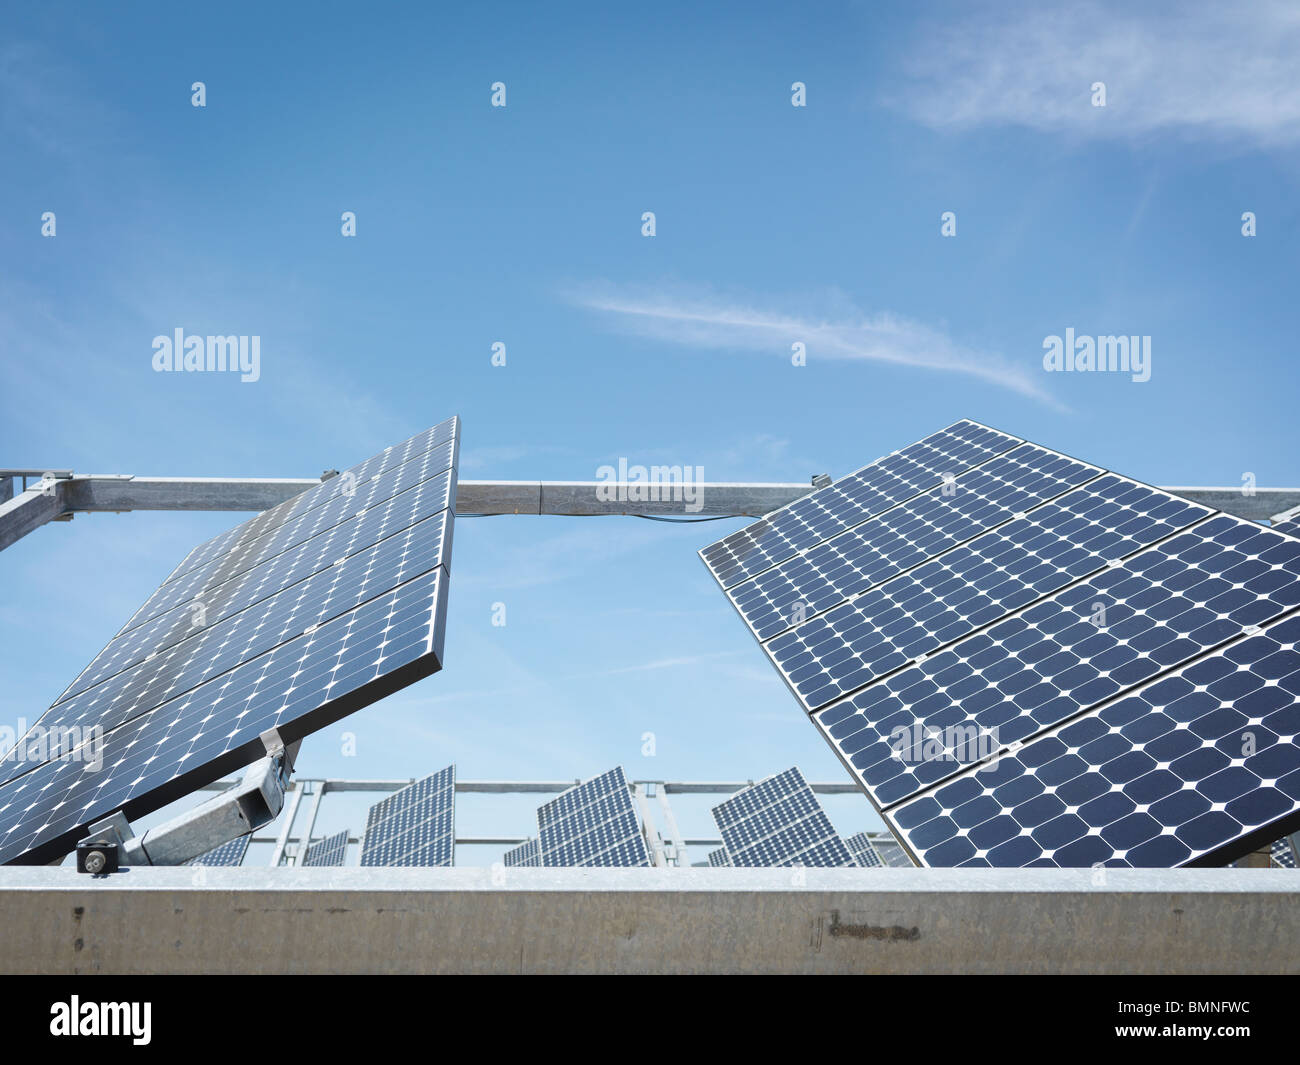 Solar power station showing front panels - Stock Image